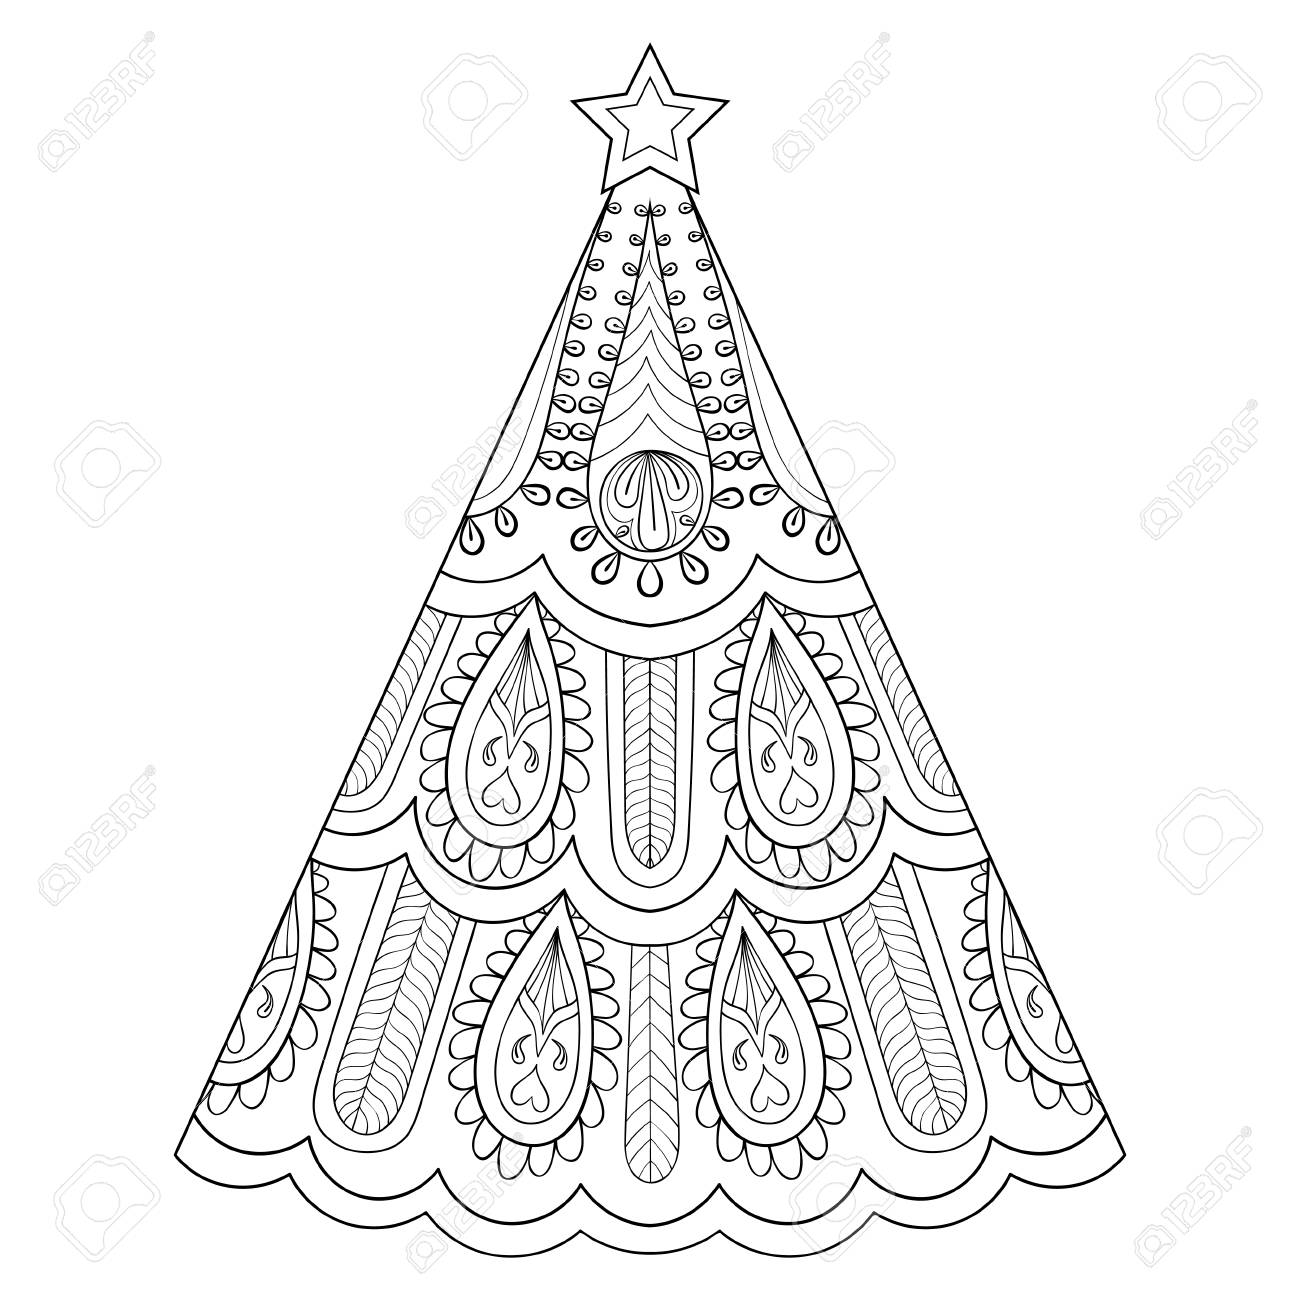 vector vector zentangle christmas tree ornamental hand drawn illustration for adult anti stress coloring page books art therapy greeting cards